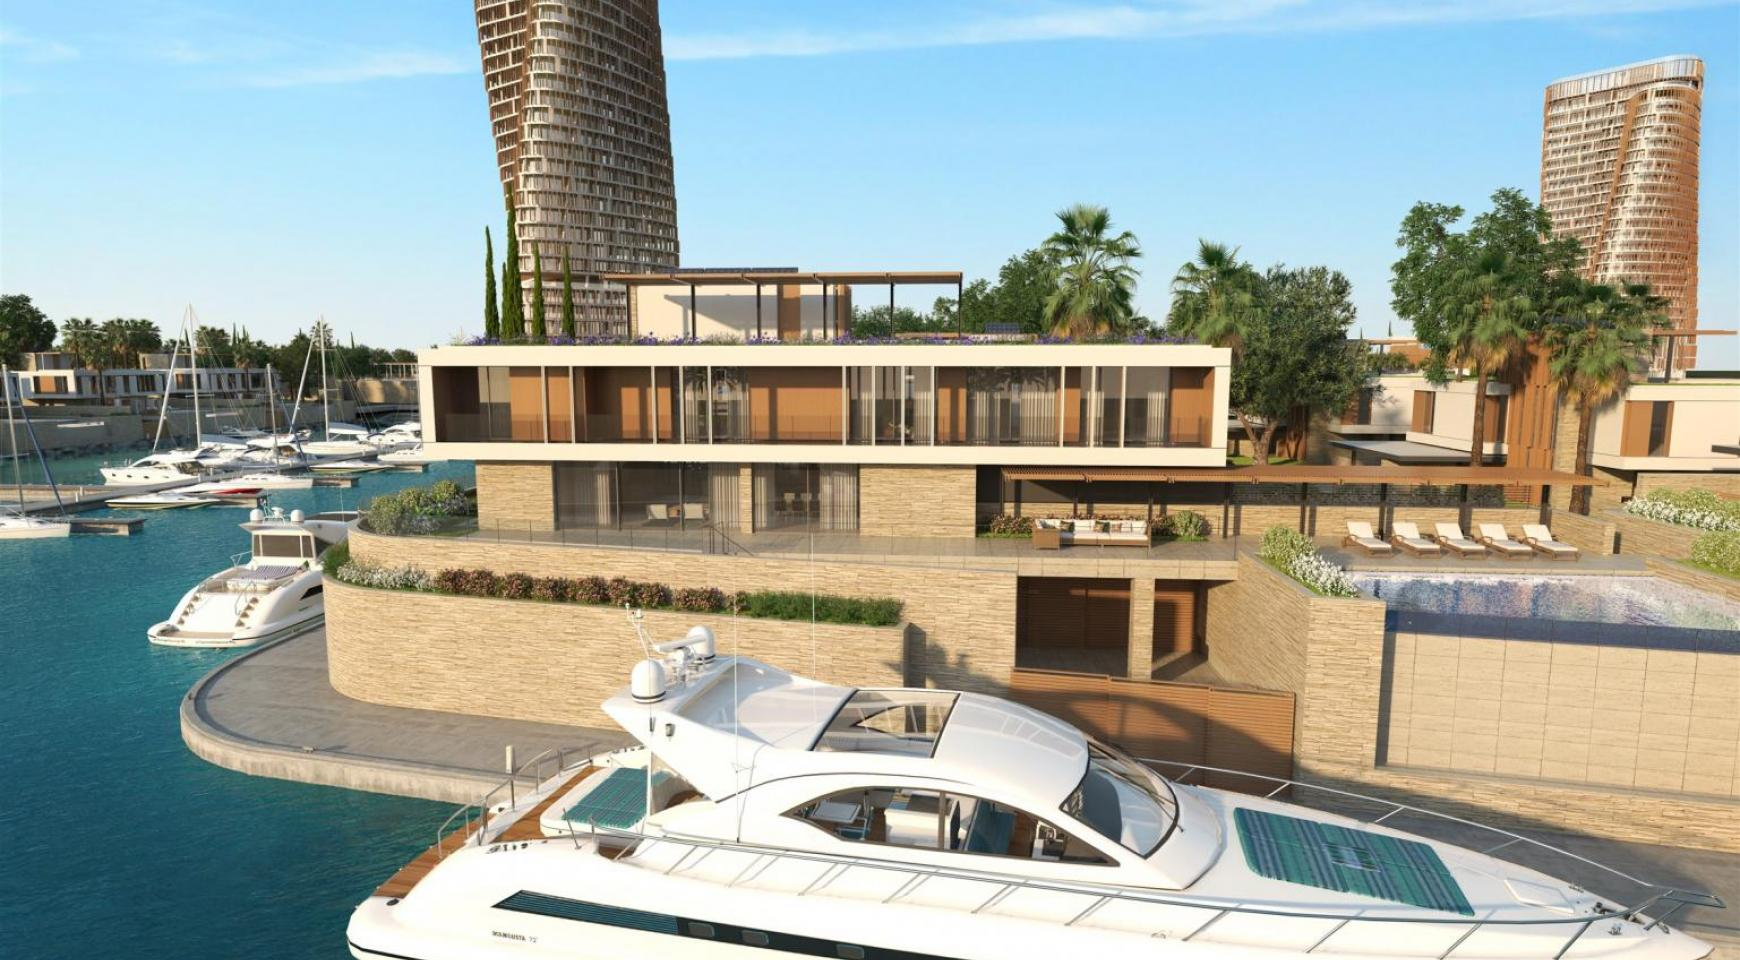 Stunning 3 Bedroom Villa in an Exclusive Project by the Sea - 6